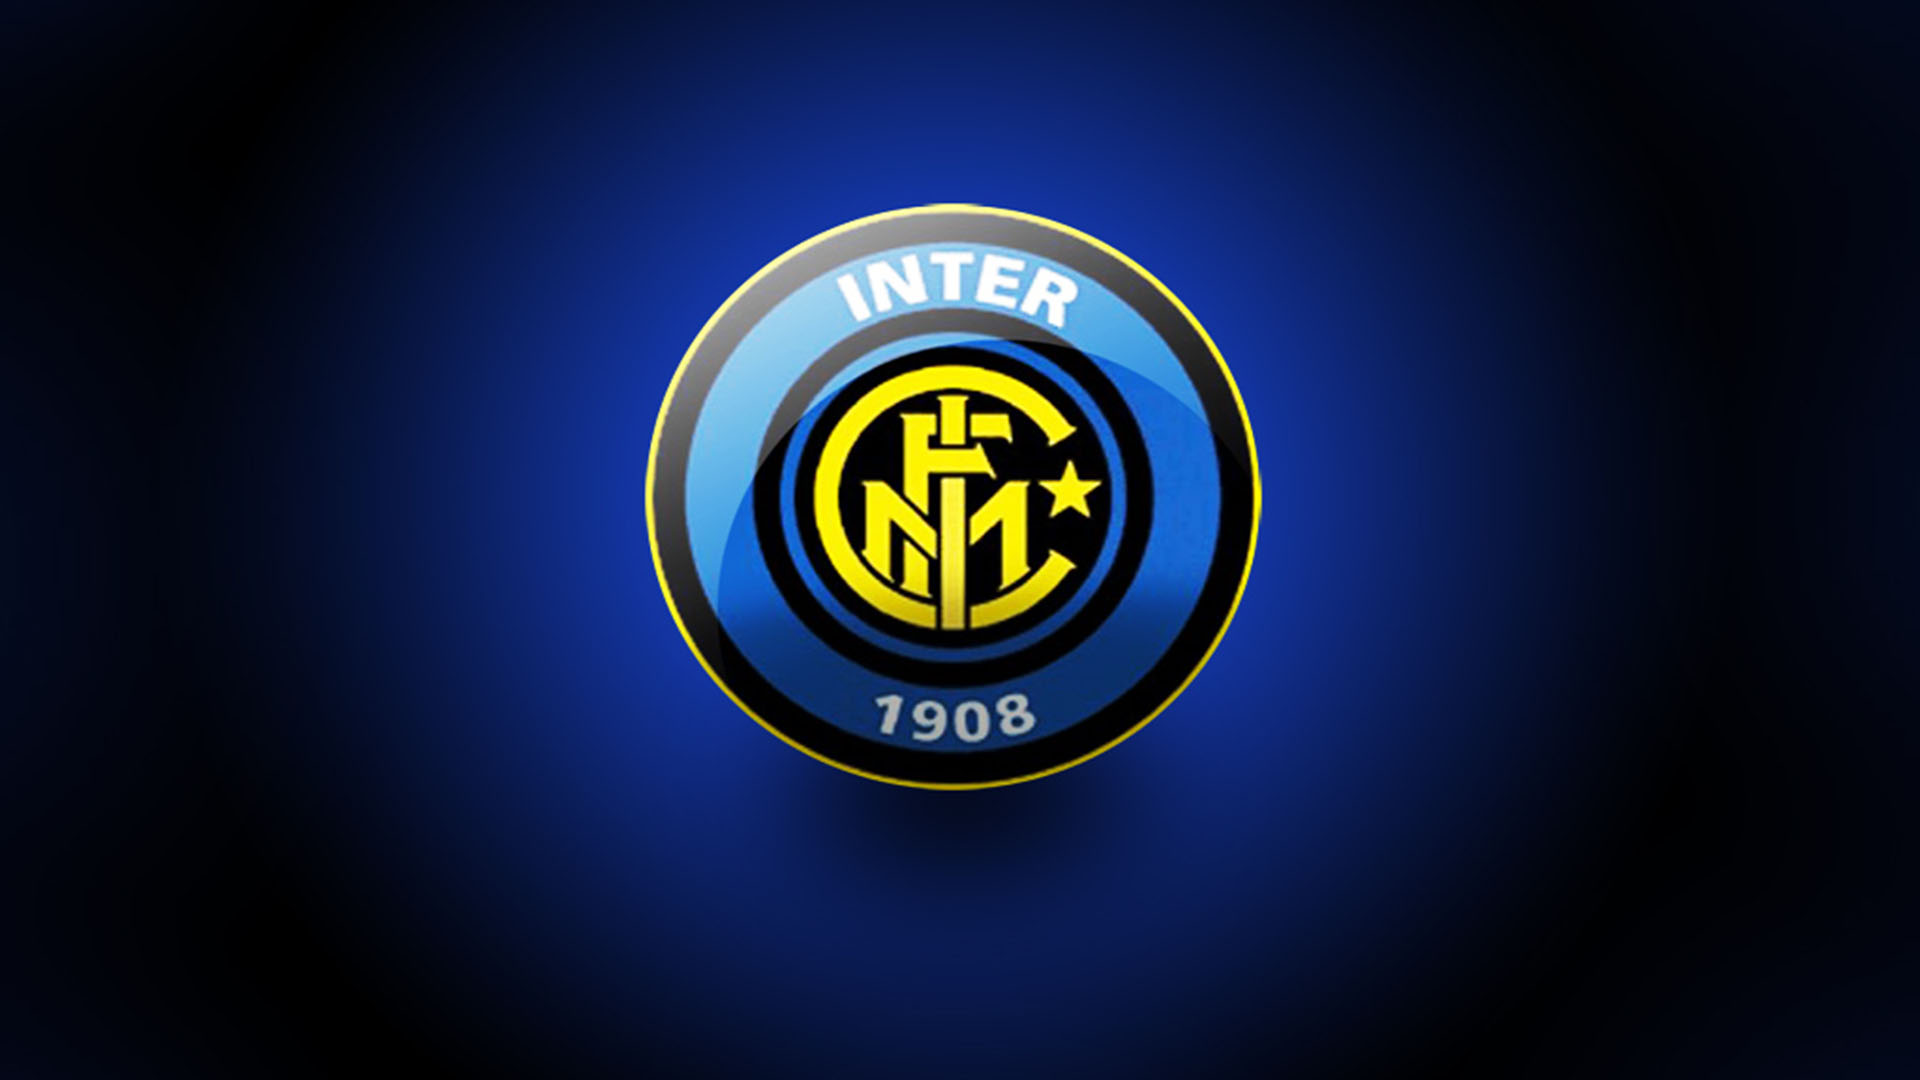 inter milan wallpaper 1920x1080 wallpapersafari